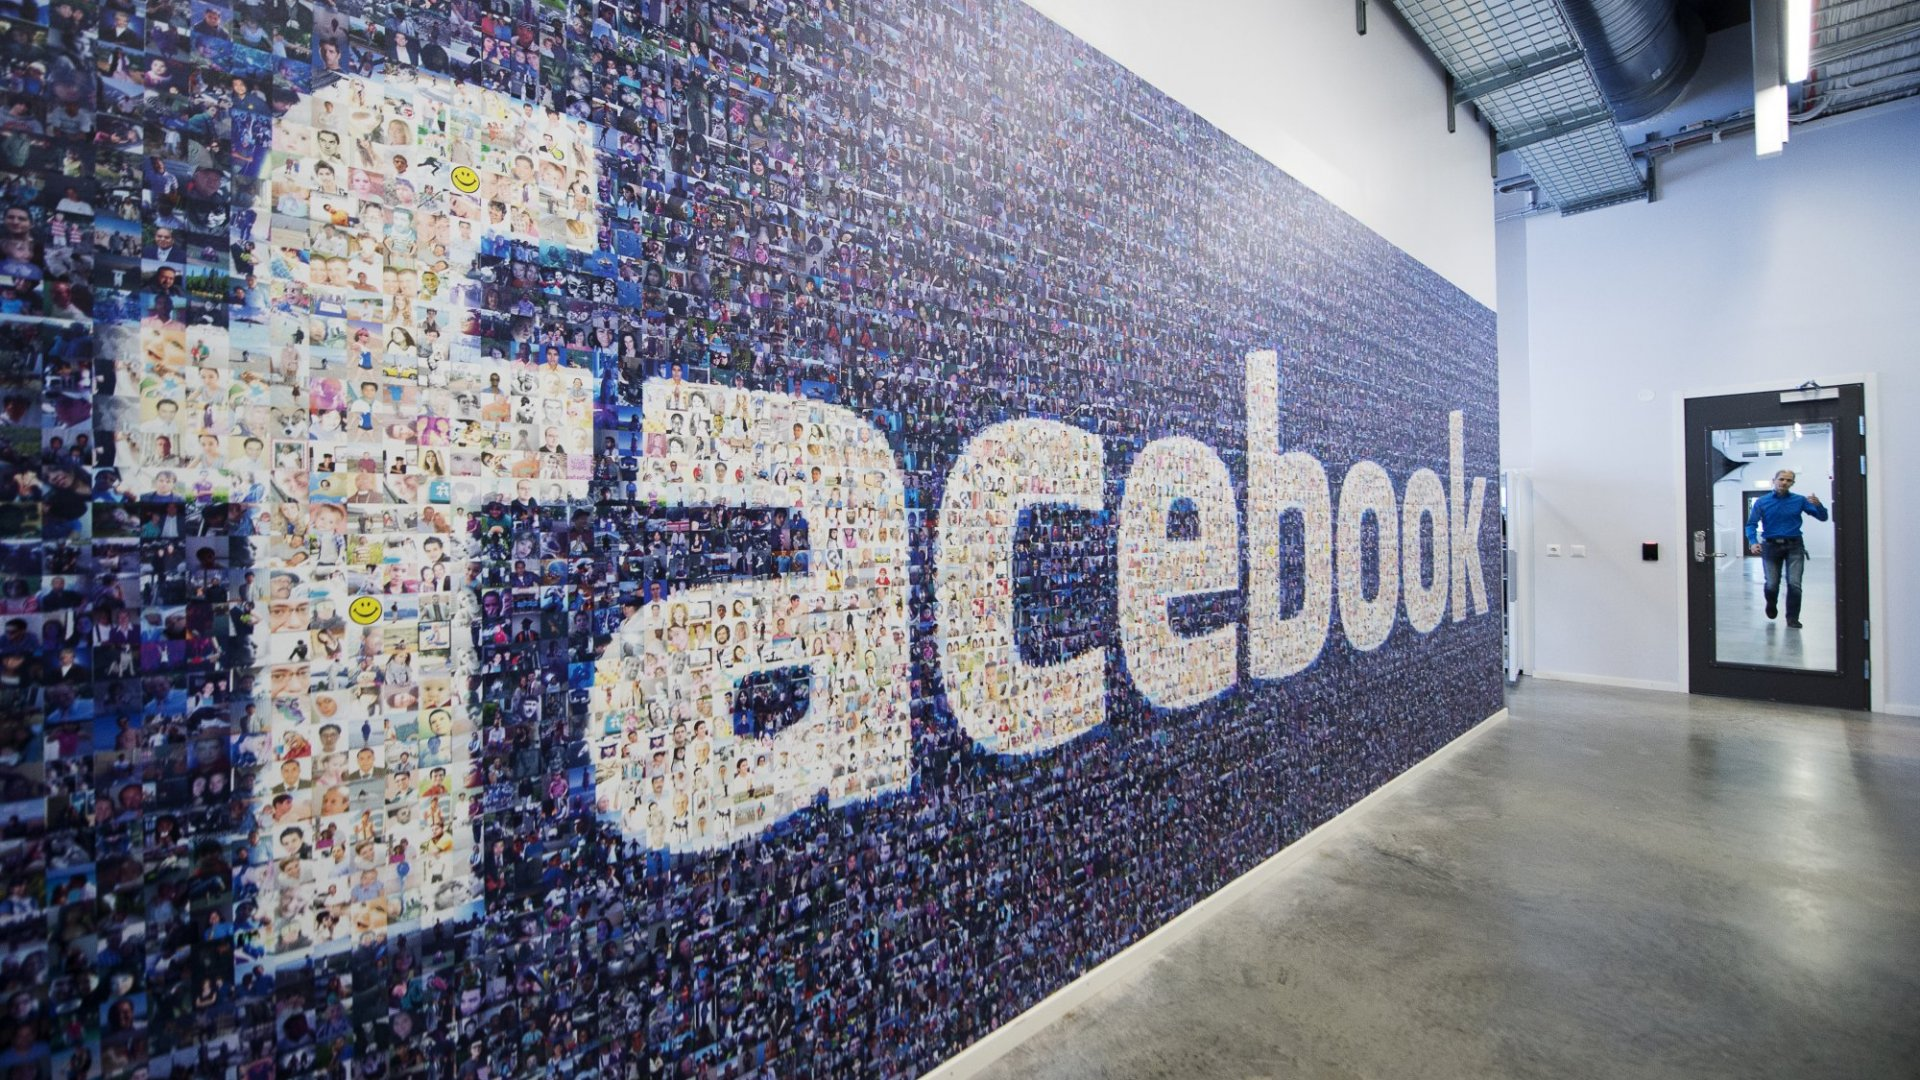 After Spending Millions, Here are the Top 7 Lessons from a Facebook Ad Agency